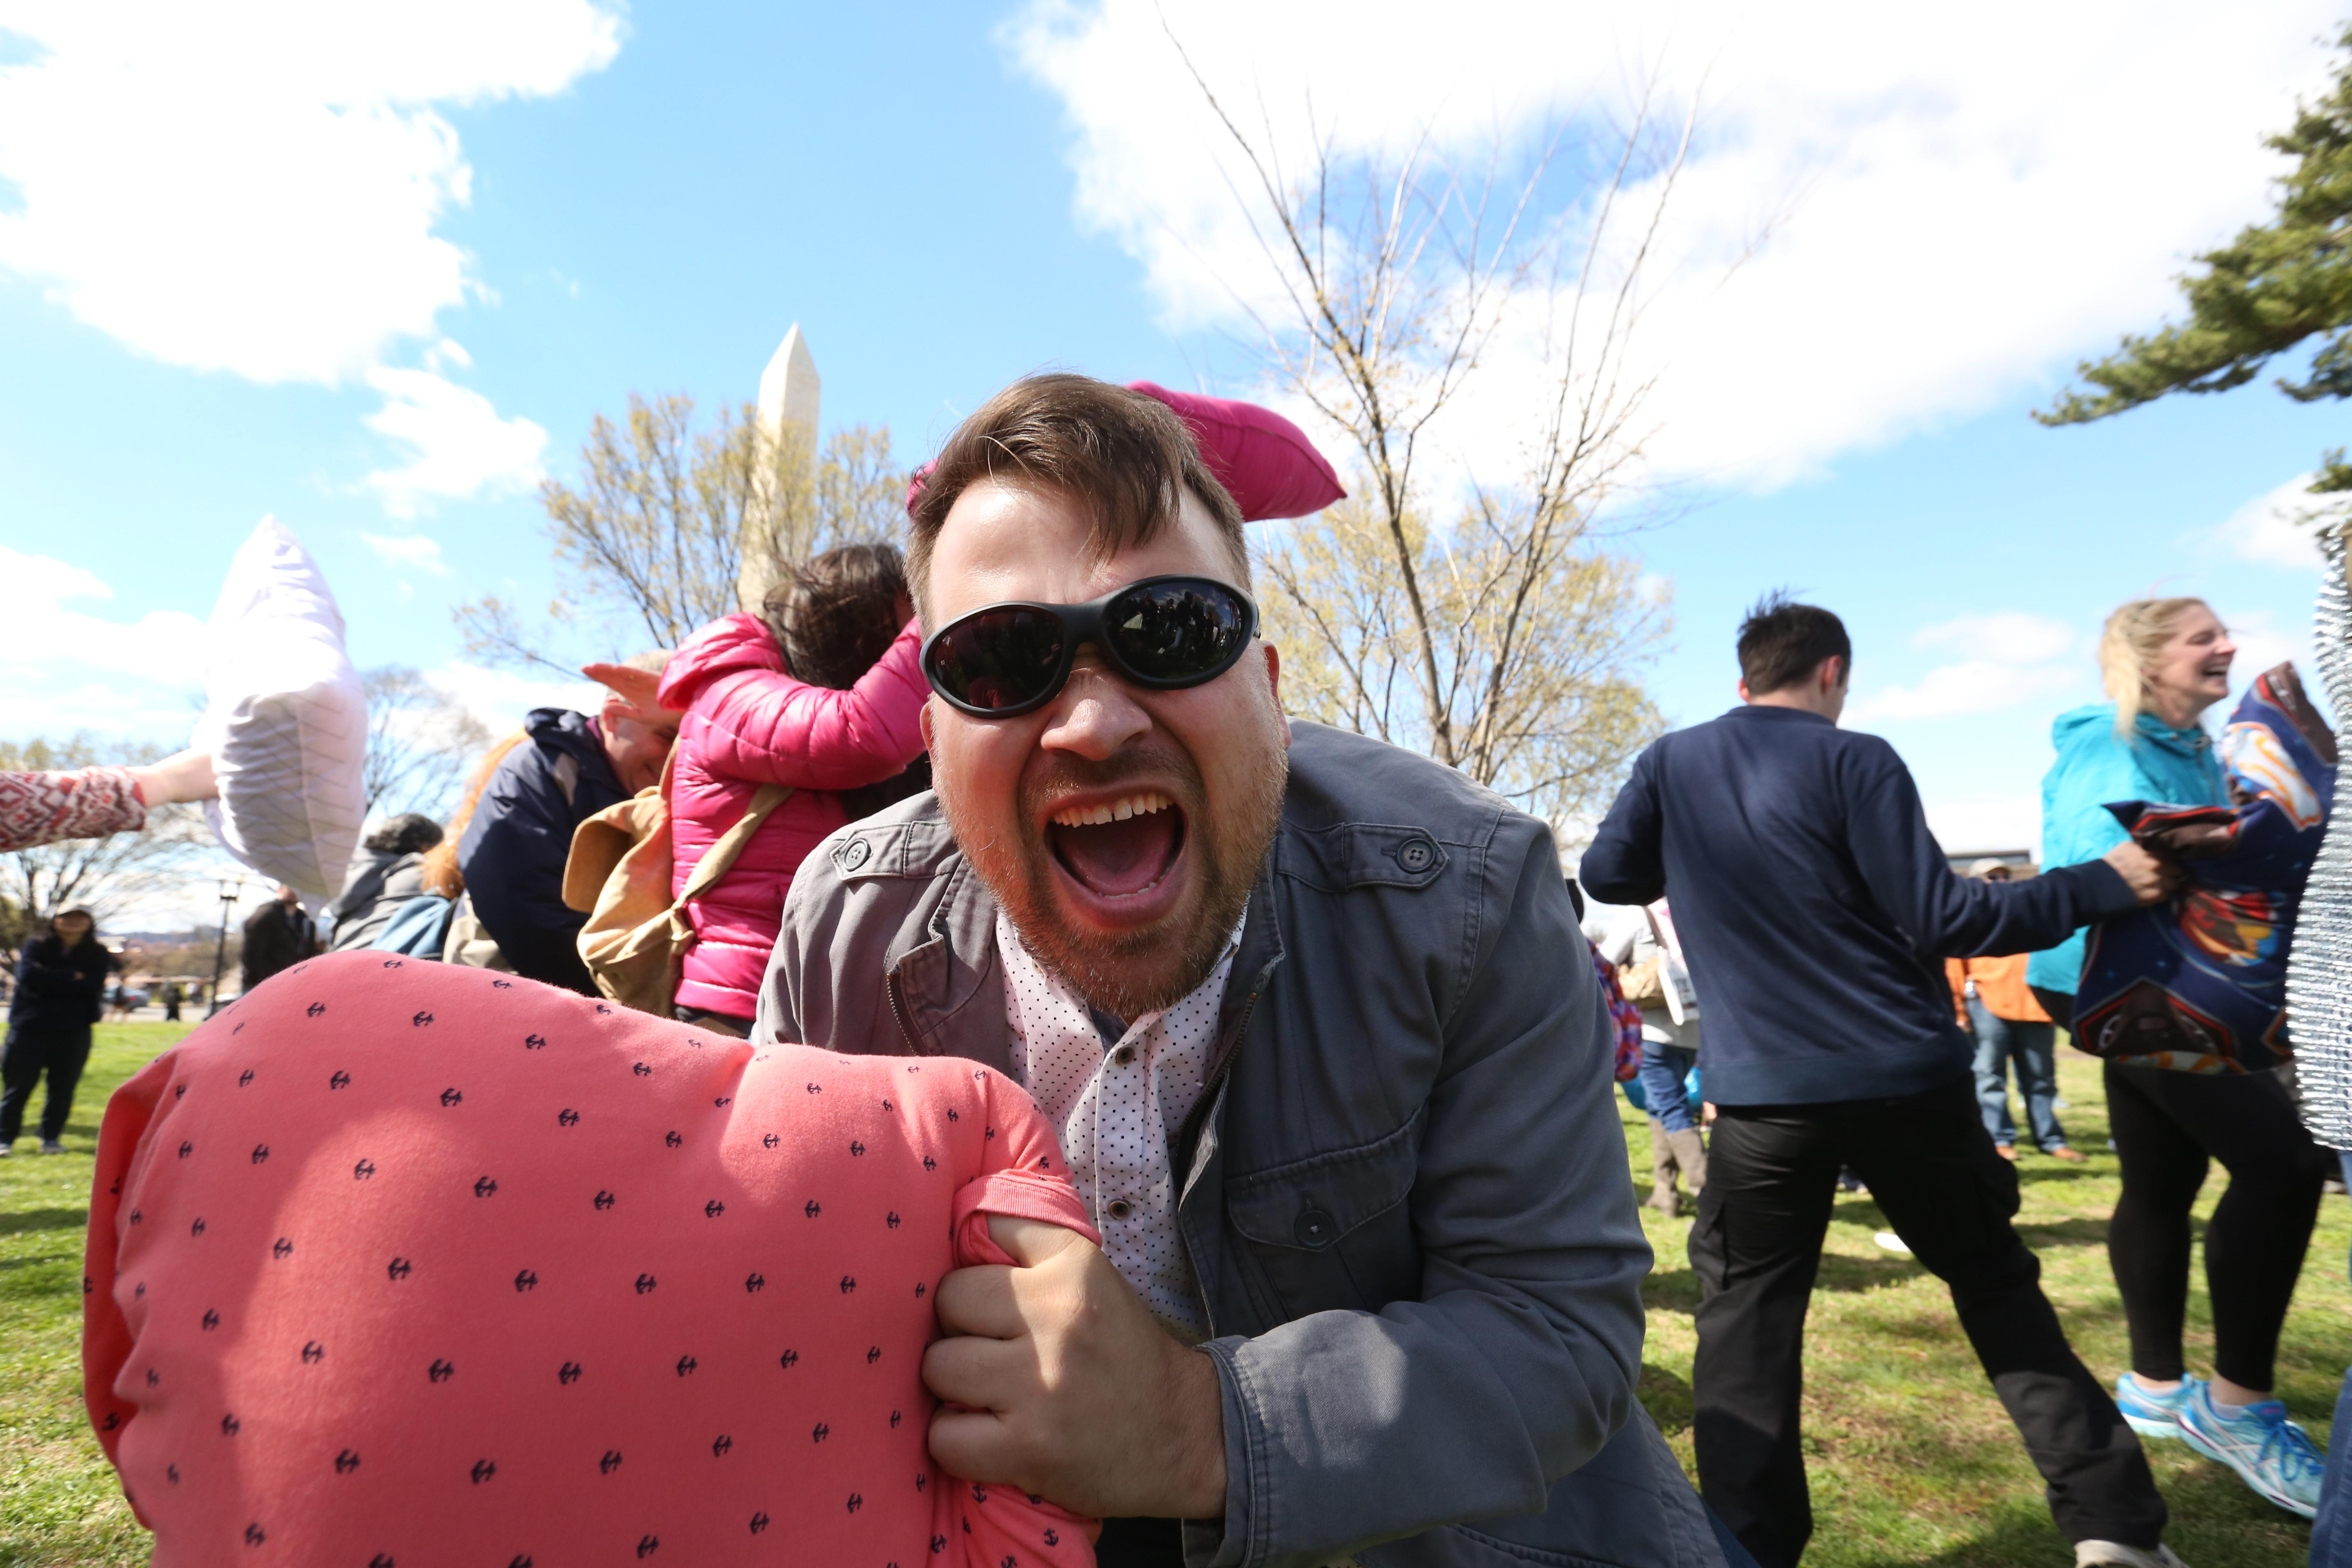 Dozens of locals gathered on the National Mall on April 1 for a pillow fight. The loosely organized event brought together people of all ages who got the chance to let loose and have a little fun. (Amanda Andrade-Rhoades/DC Refined)